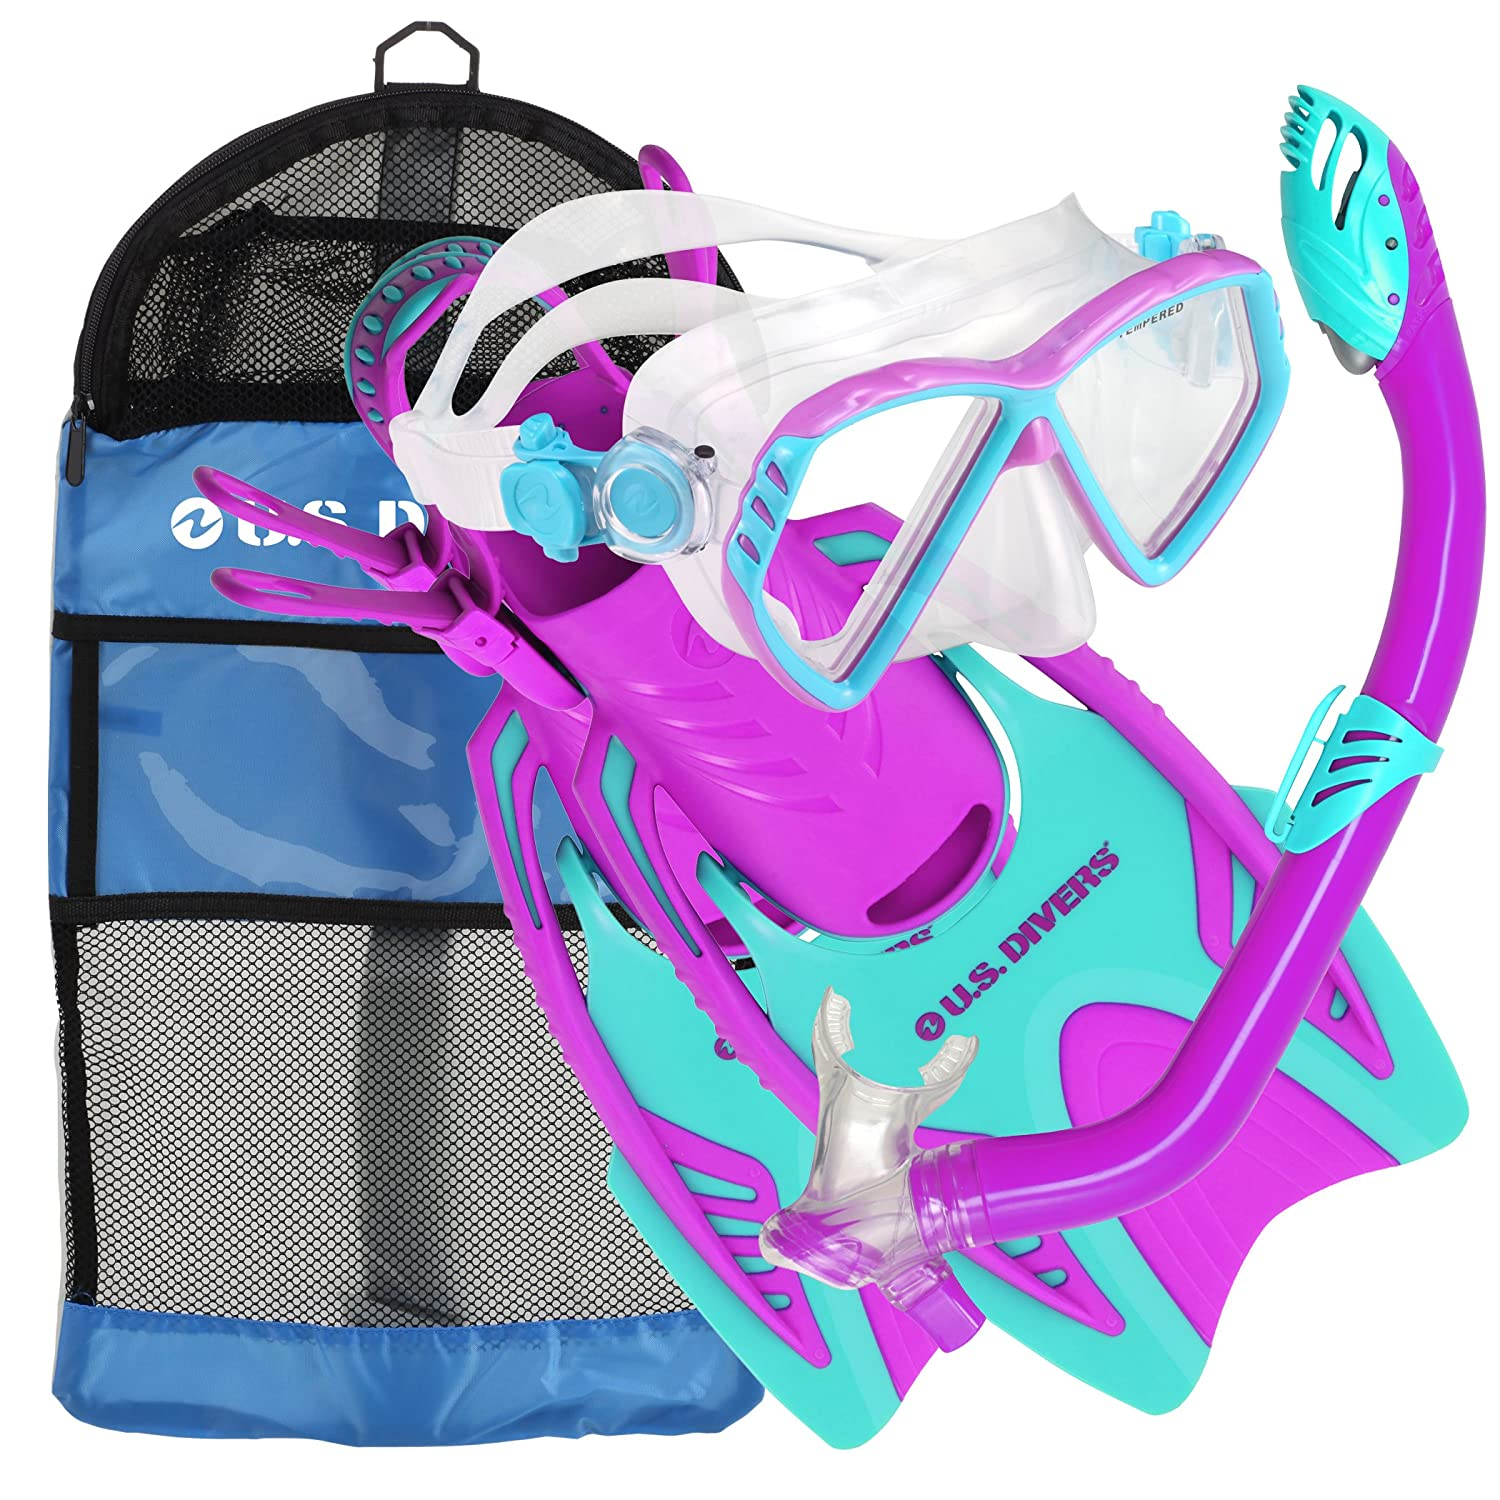 U.S. Divers Regal Junior maschera, pinne e trigger Laguna boccaglio Combo set Aqua Lung 240485-P